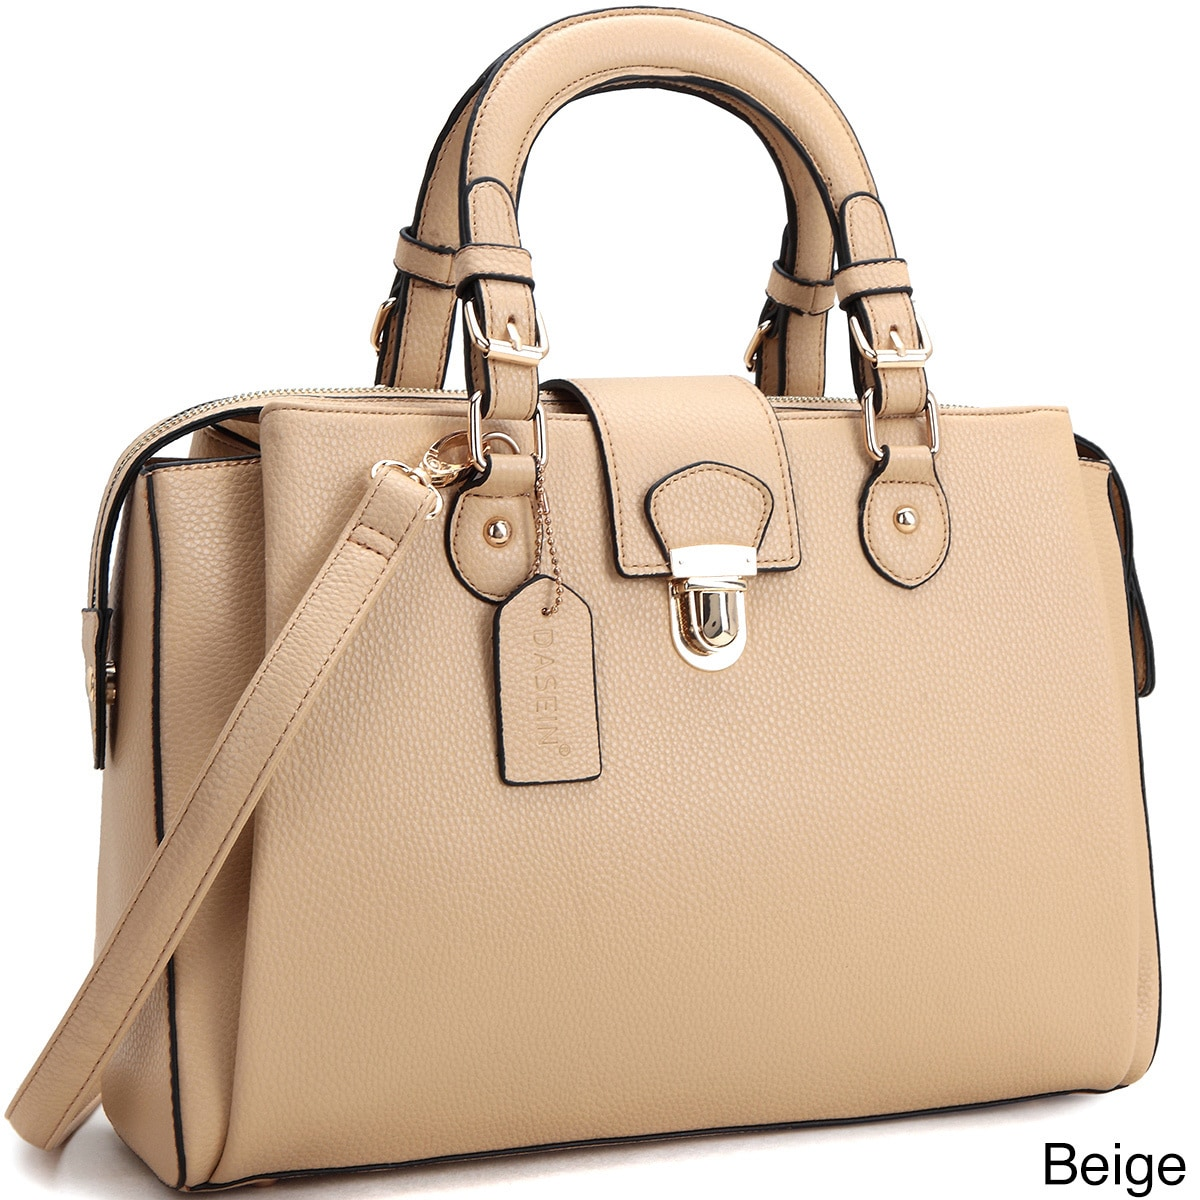 Beige Handbags Our Best Clothing Shoes Deals Online At